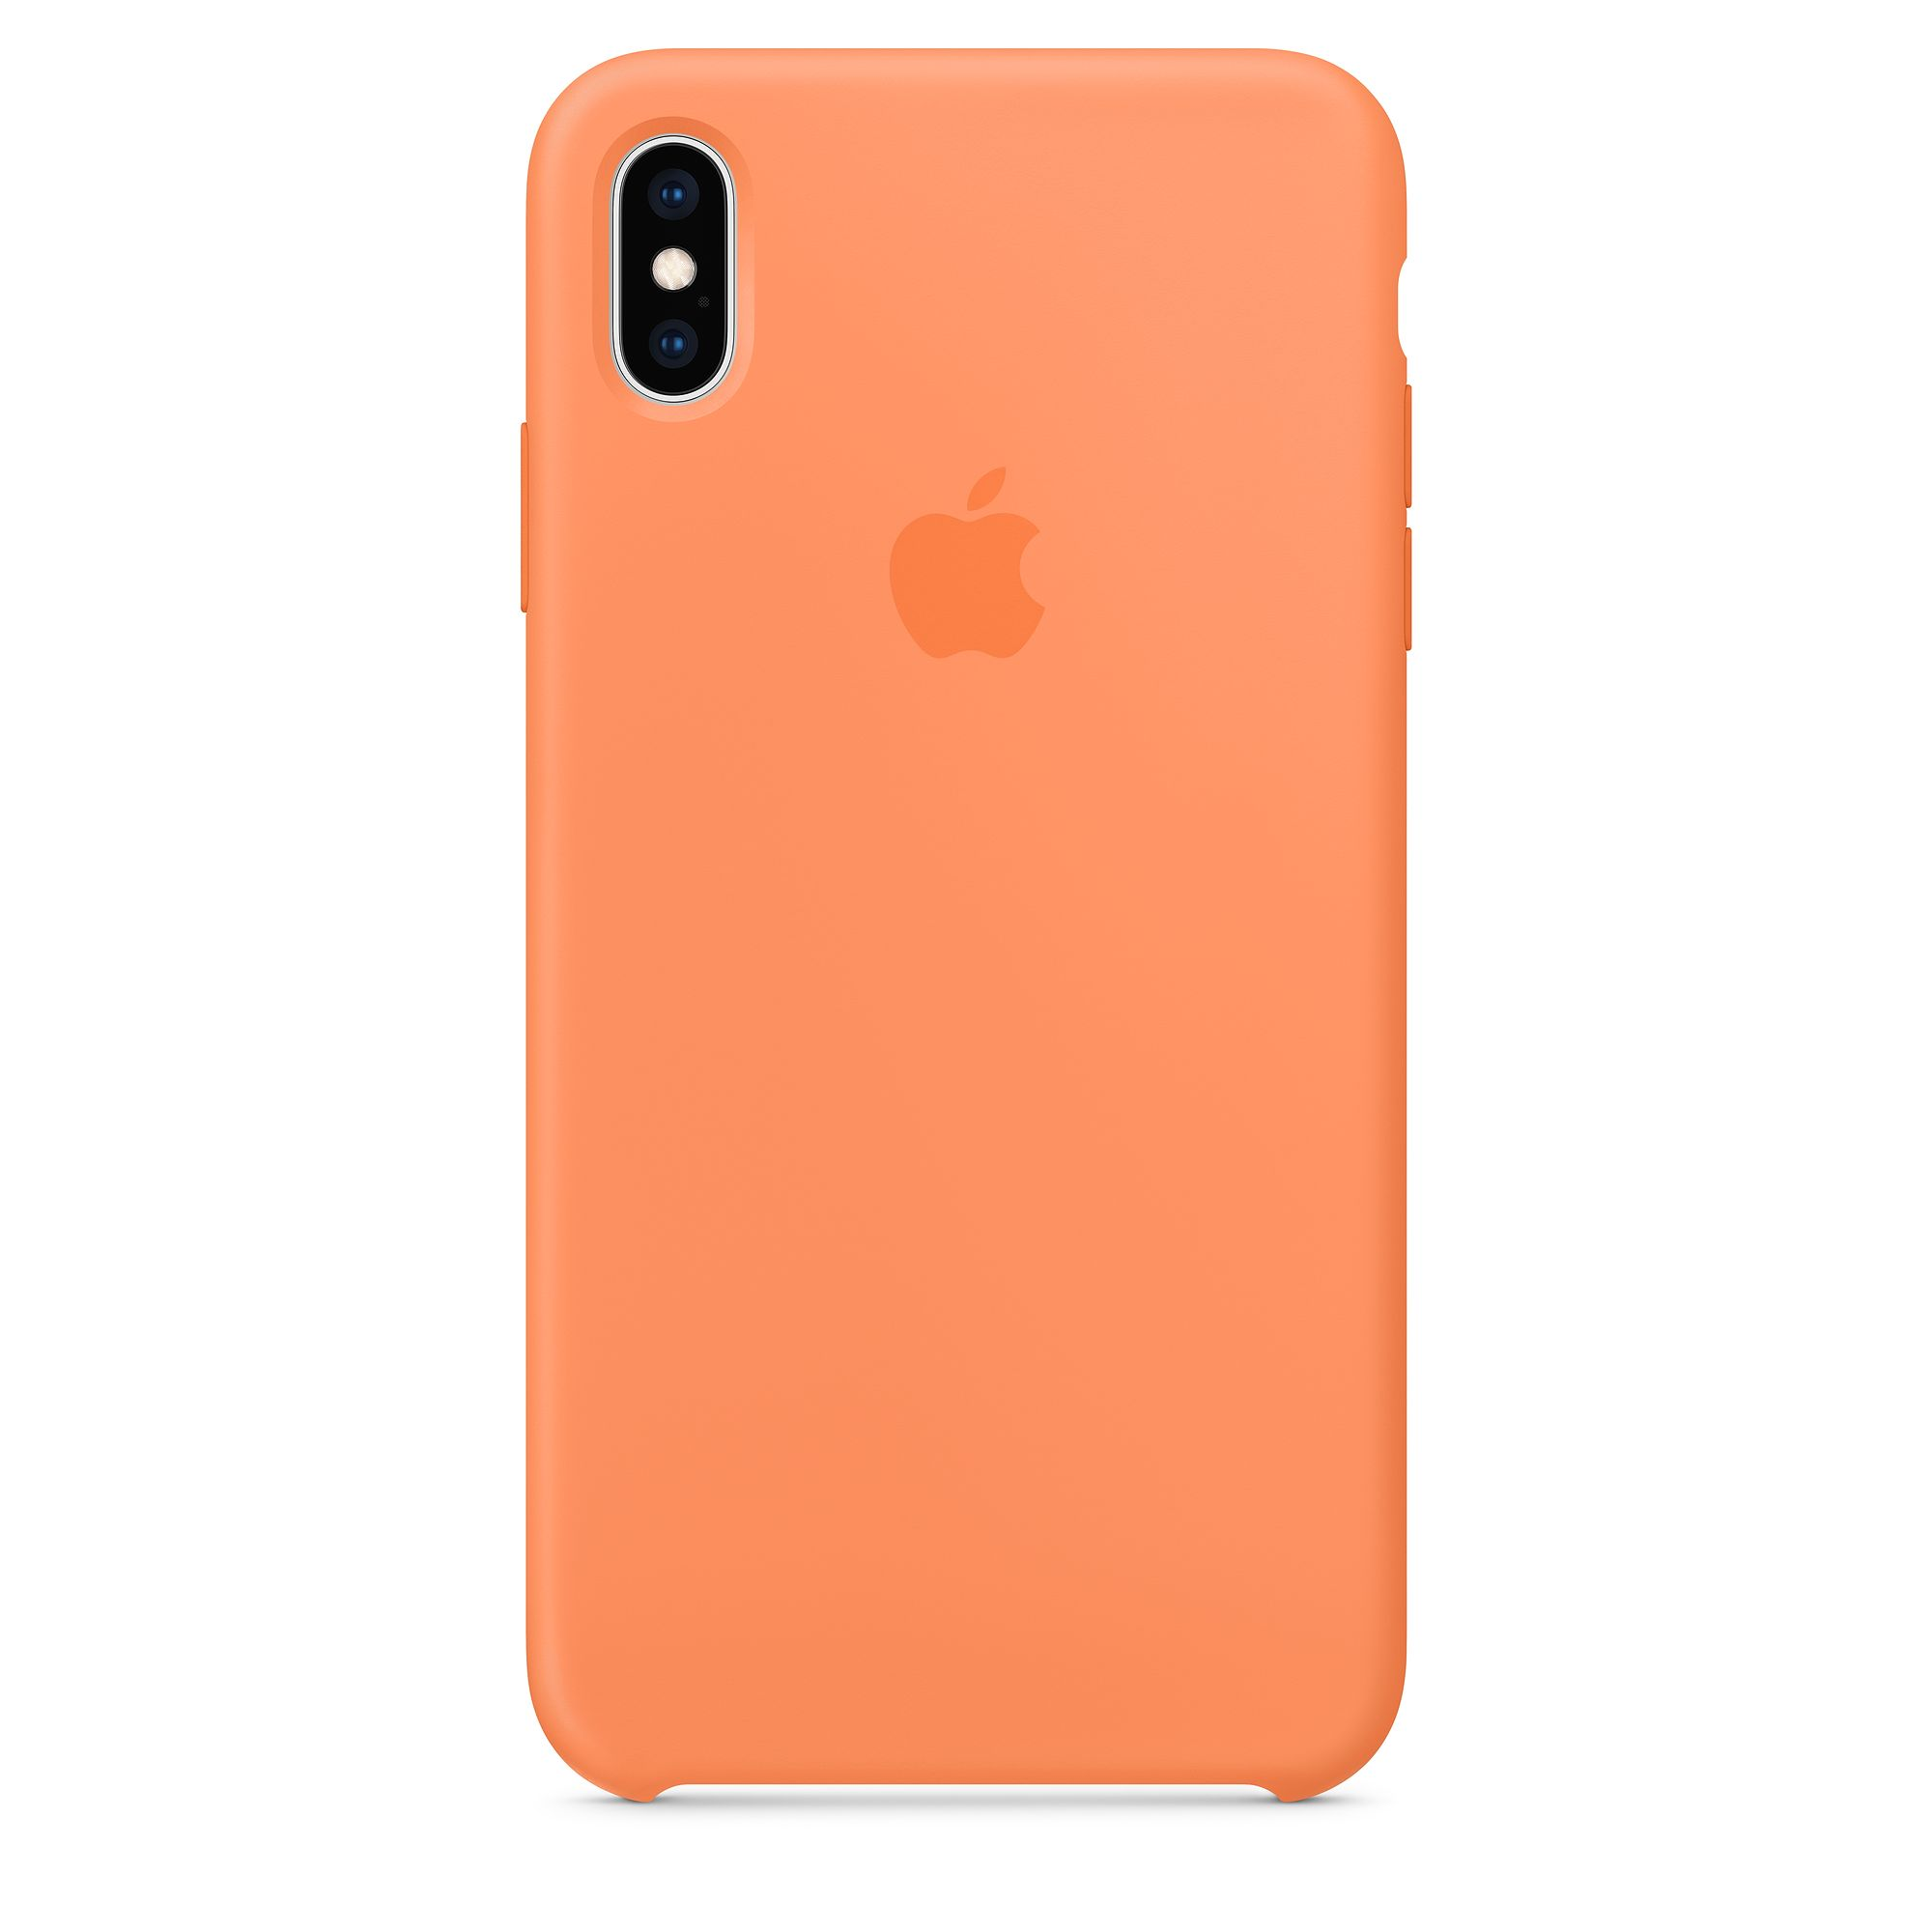 Silicon Case Original for iPhone X/Xs (Papaya)